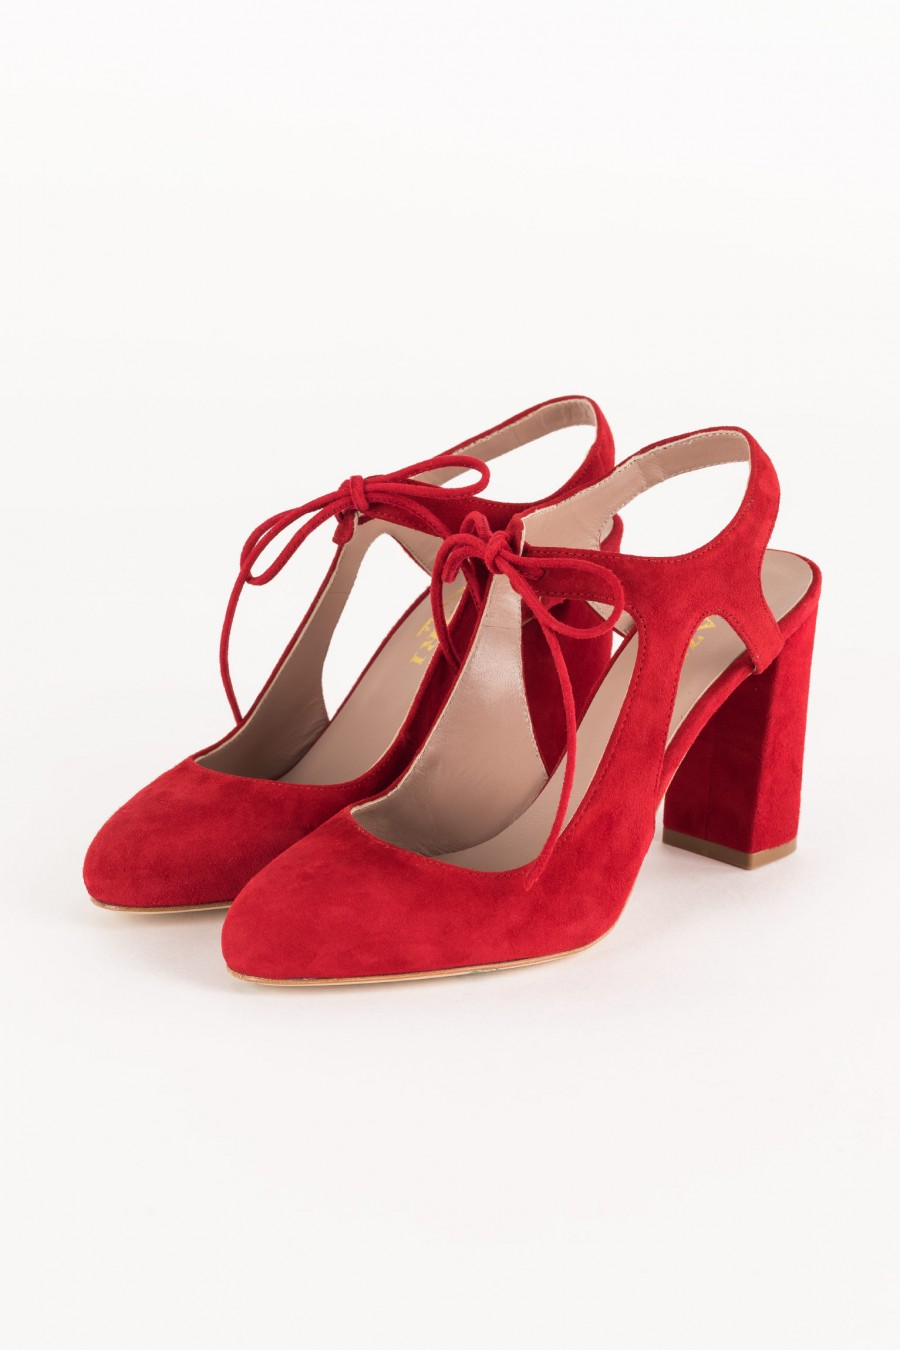 red shoe with heel